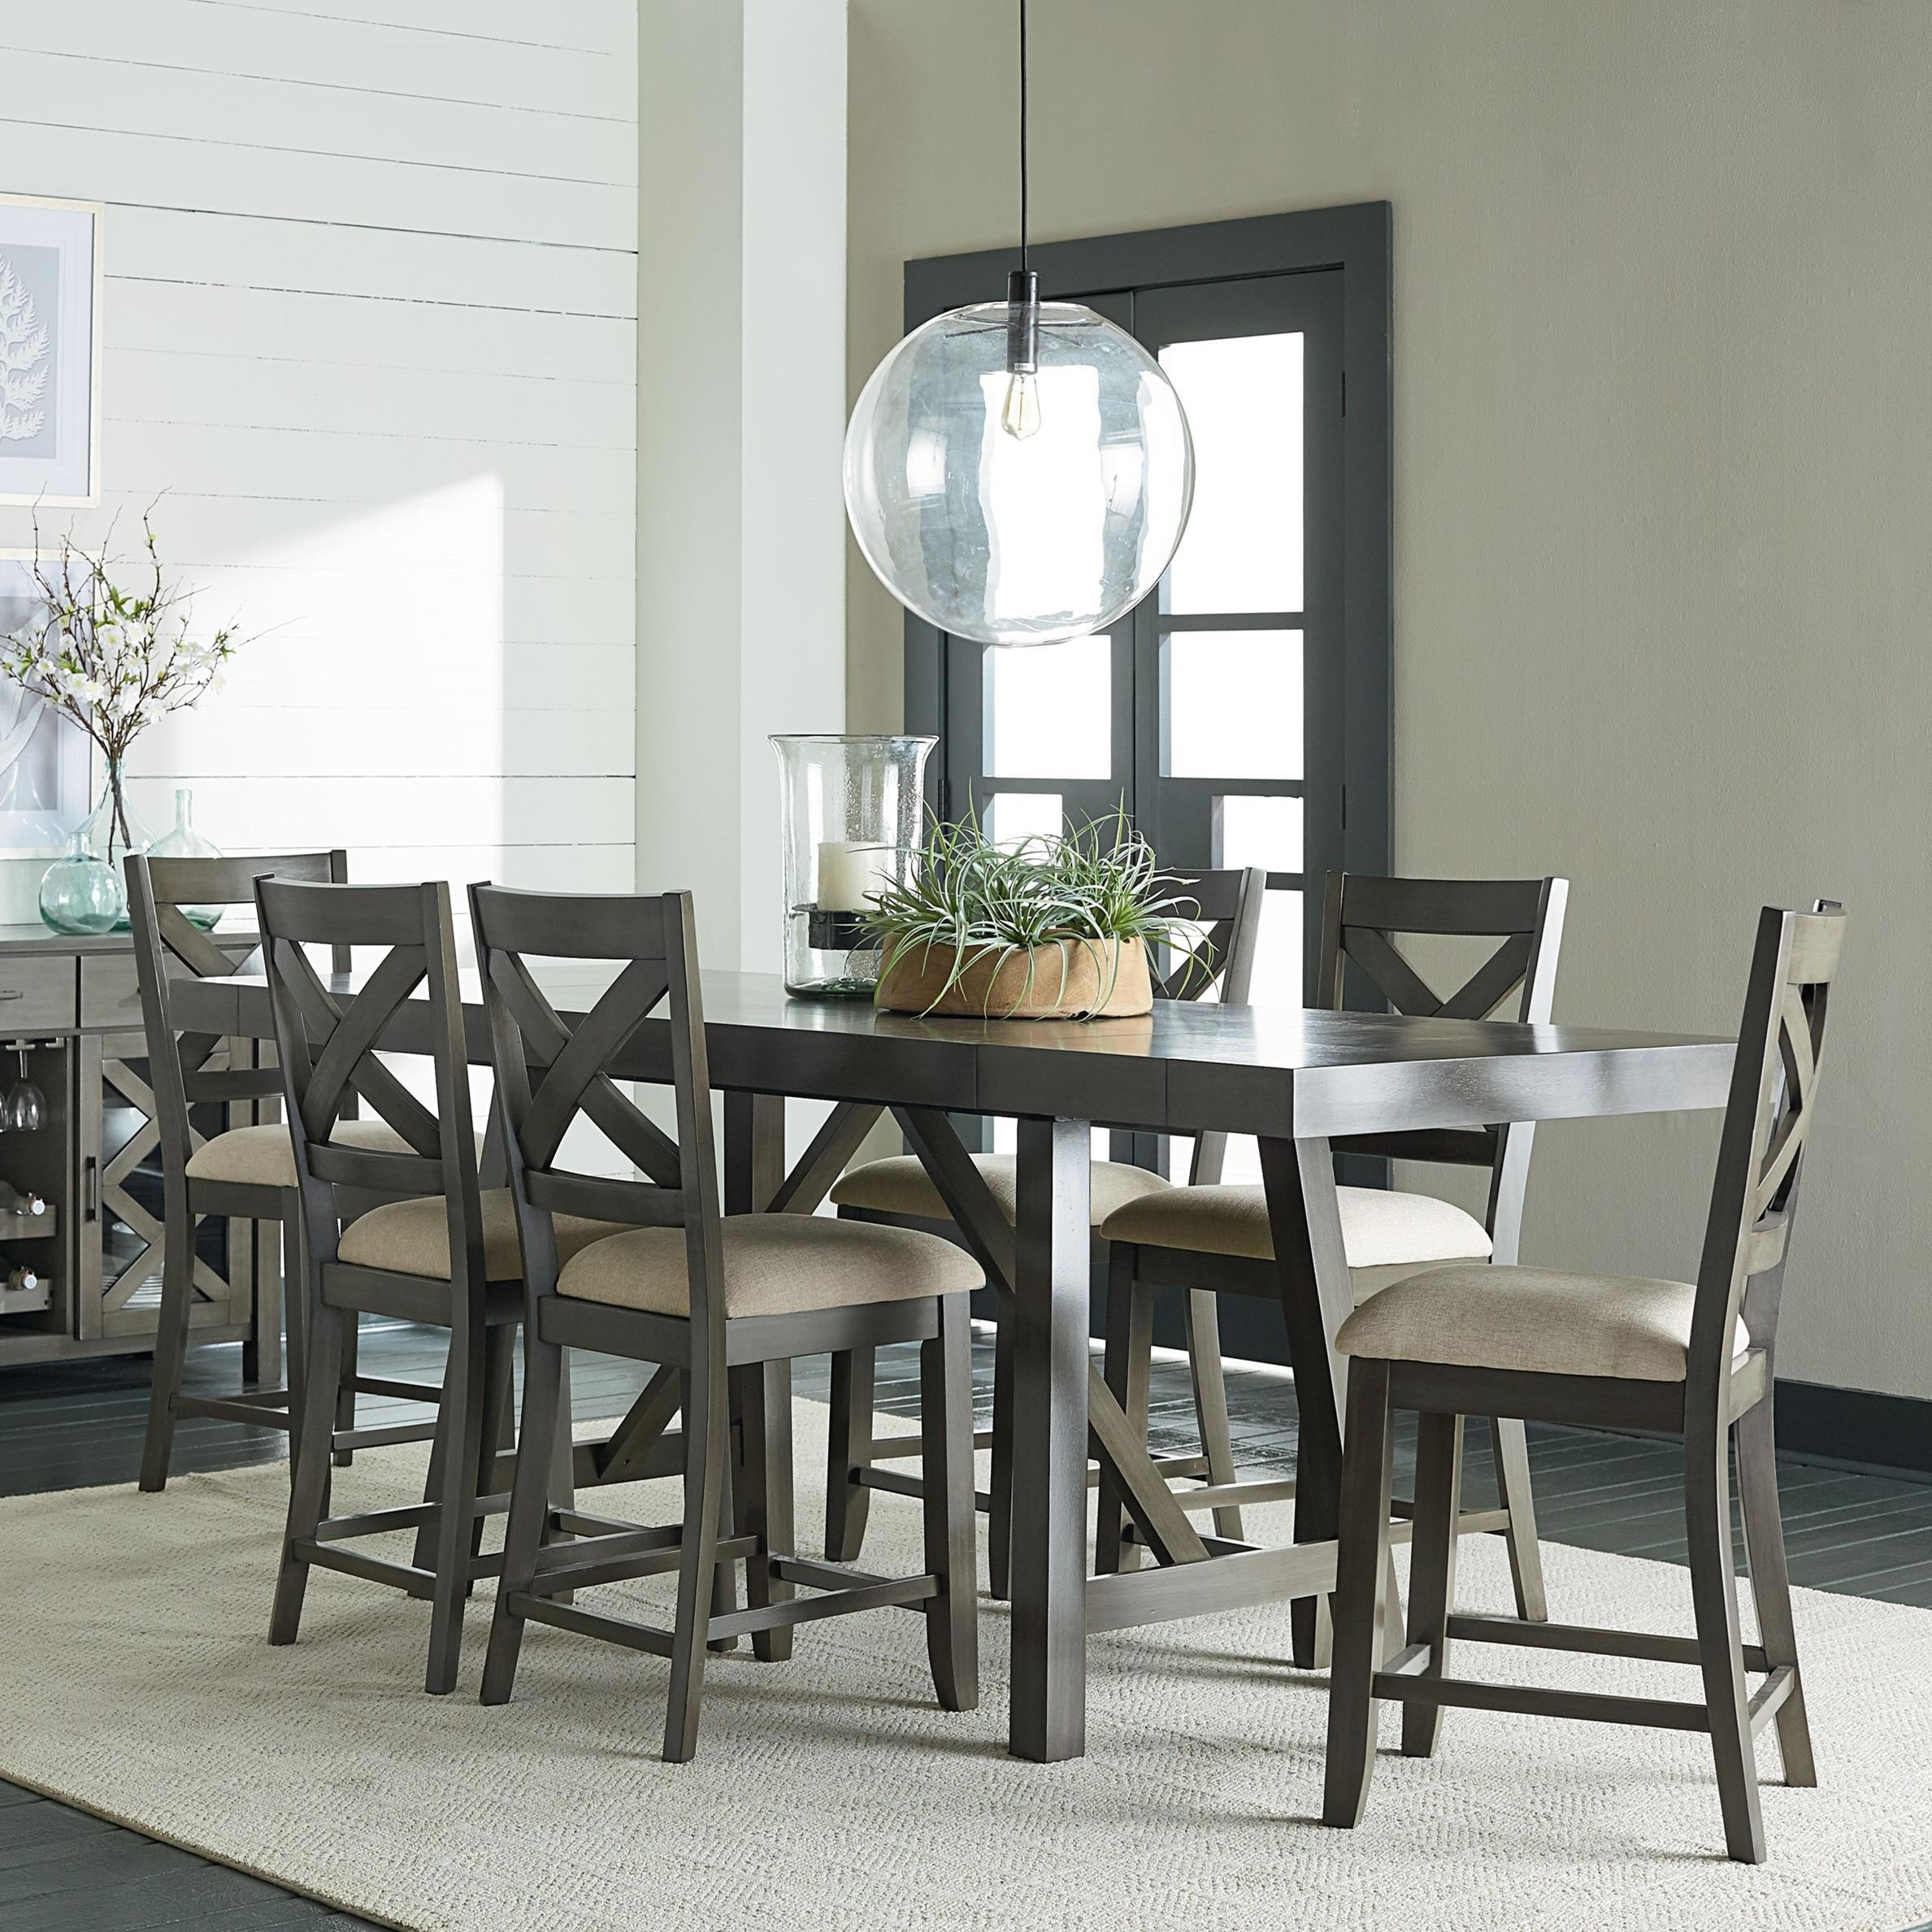 counter height 7 piece dining room table set by standard furniture wolf and gardiner wolf. Black Bedroom Furniture Sets. Home Design Ideas